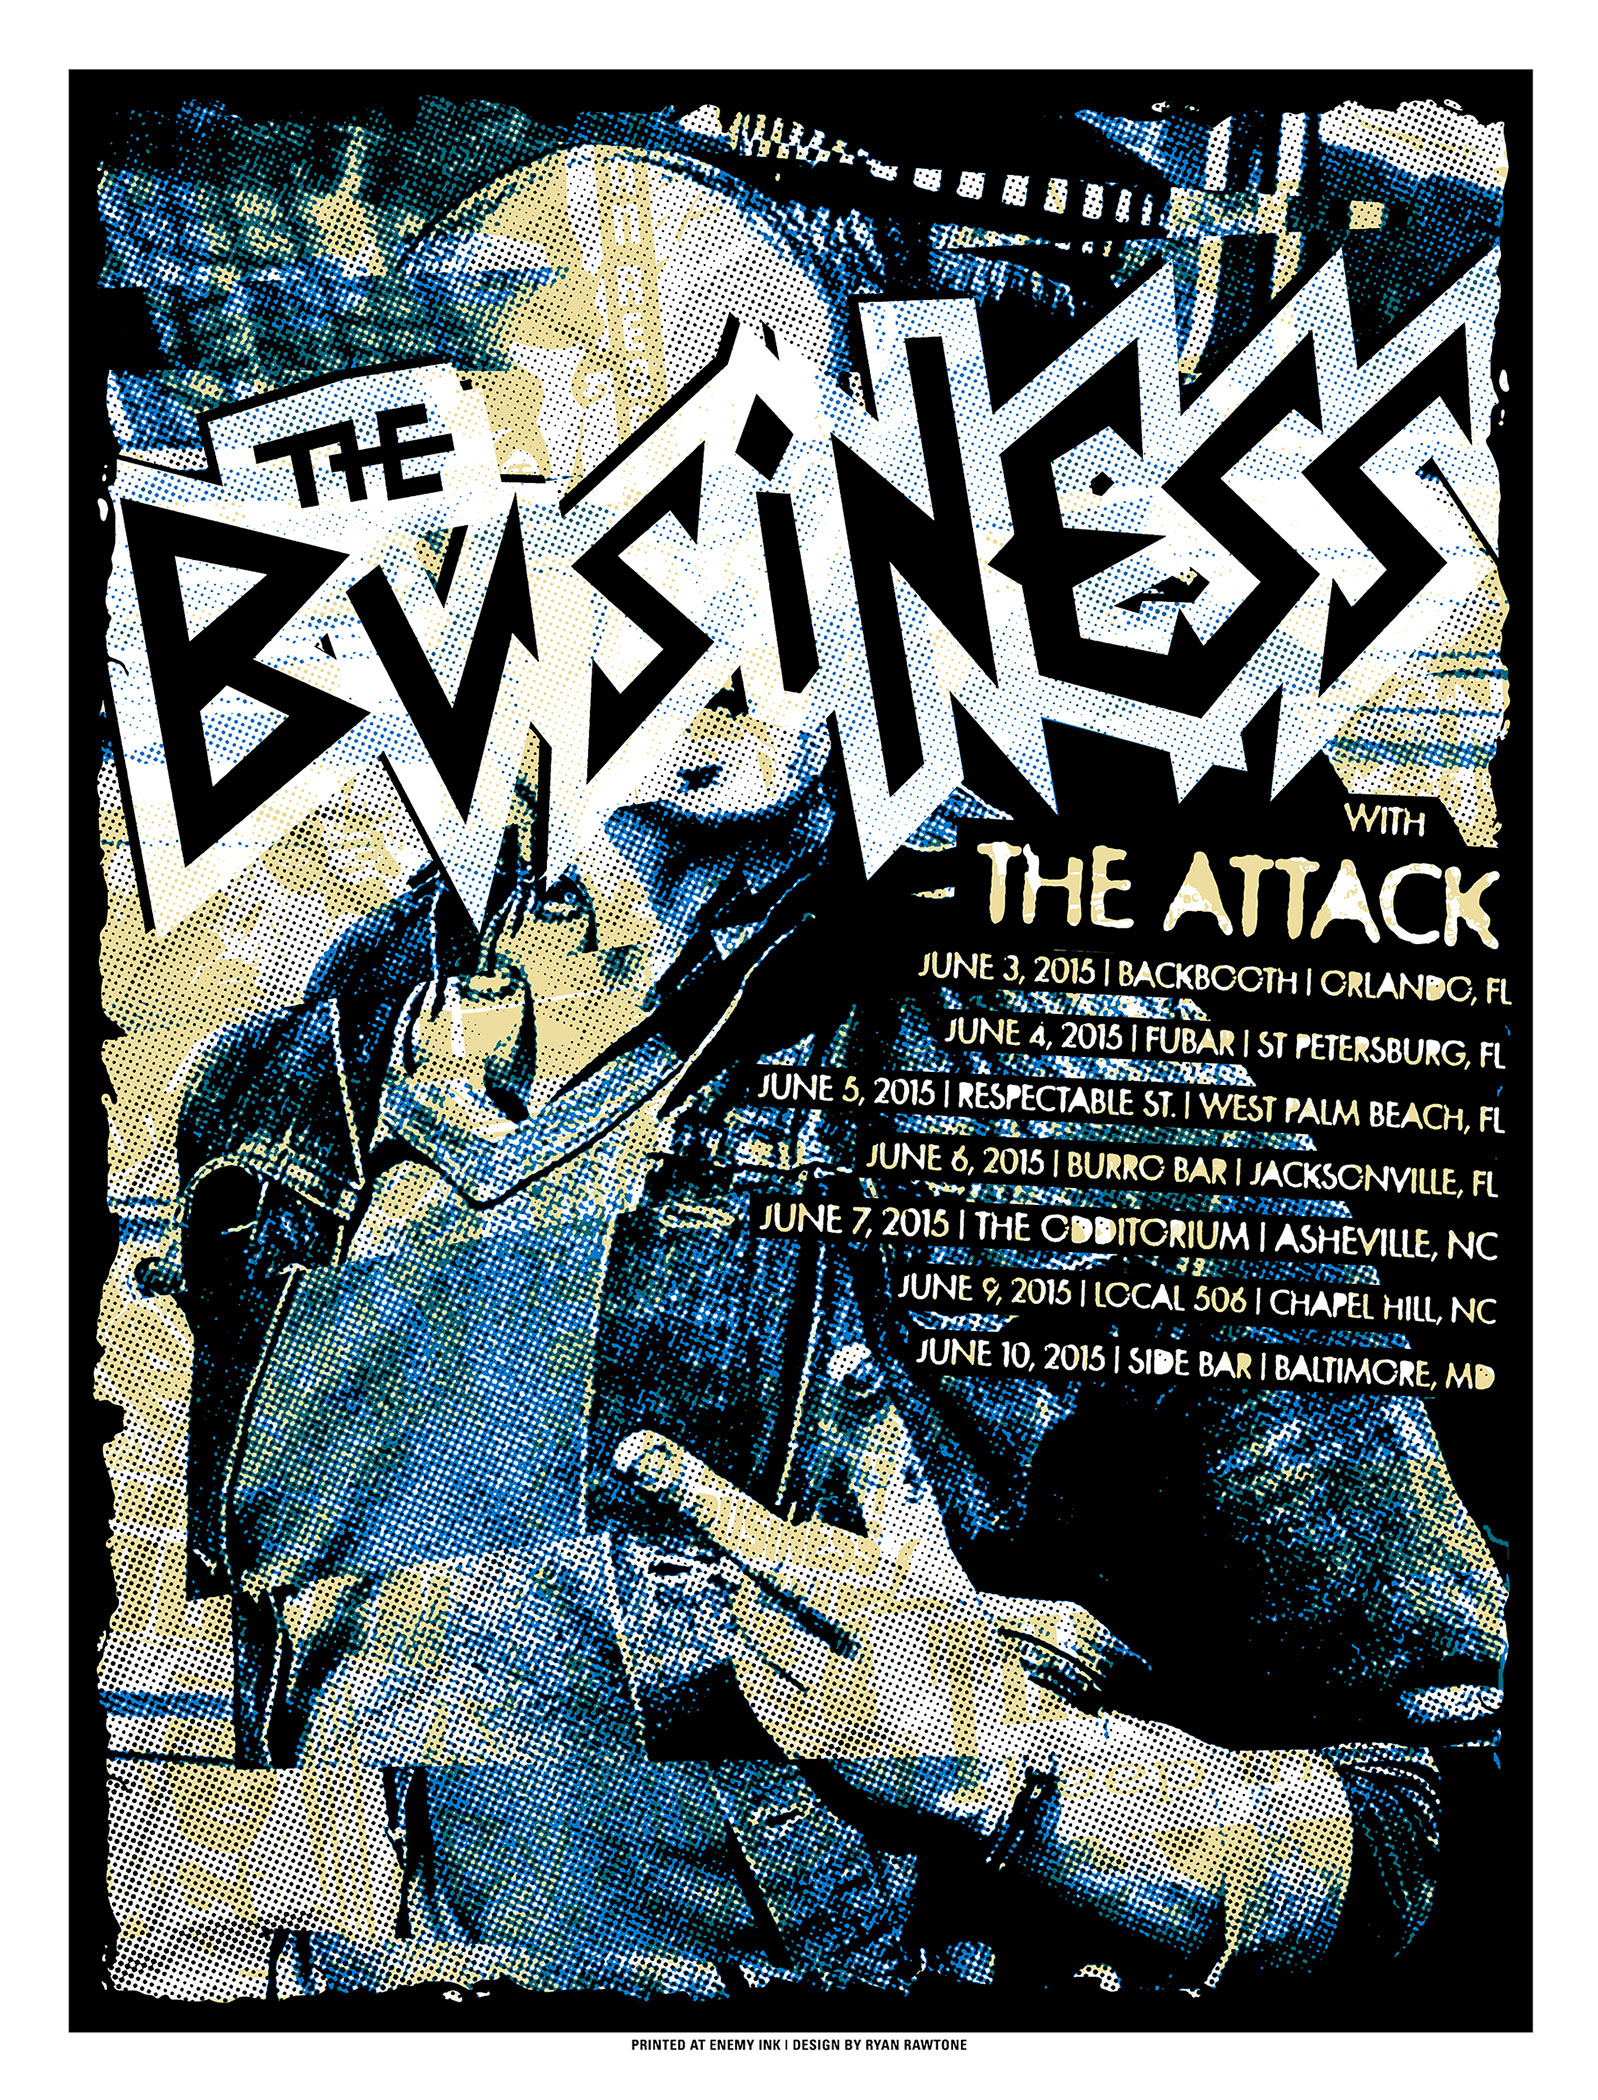 TheBusiness_Attack-June2015-Dates_poster